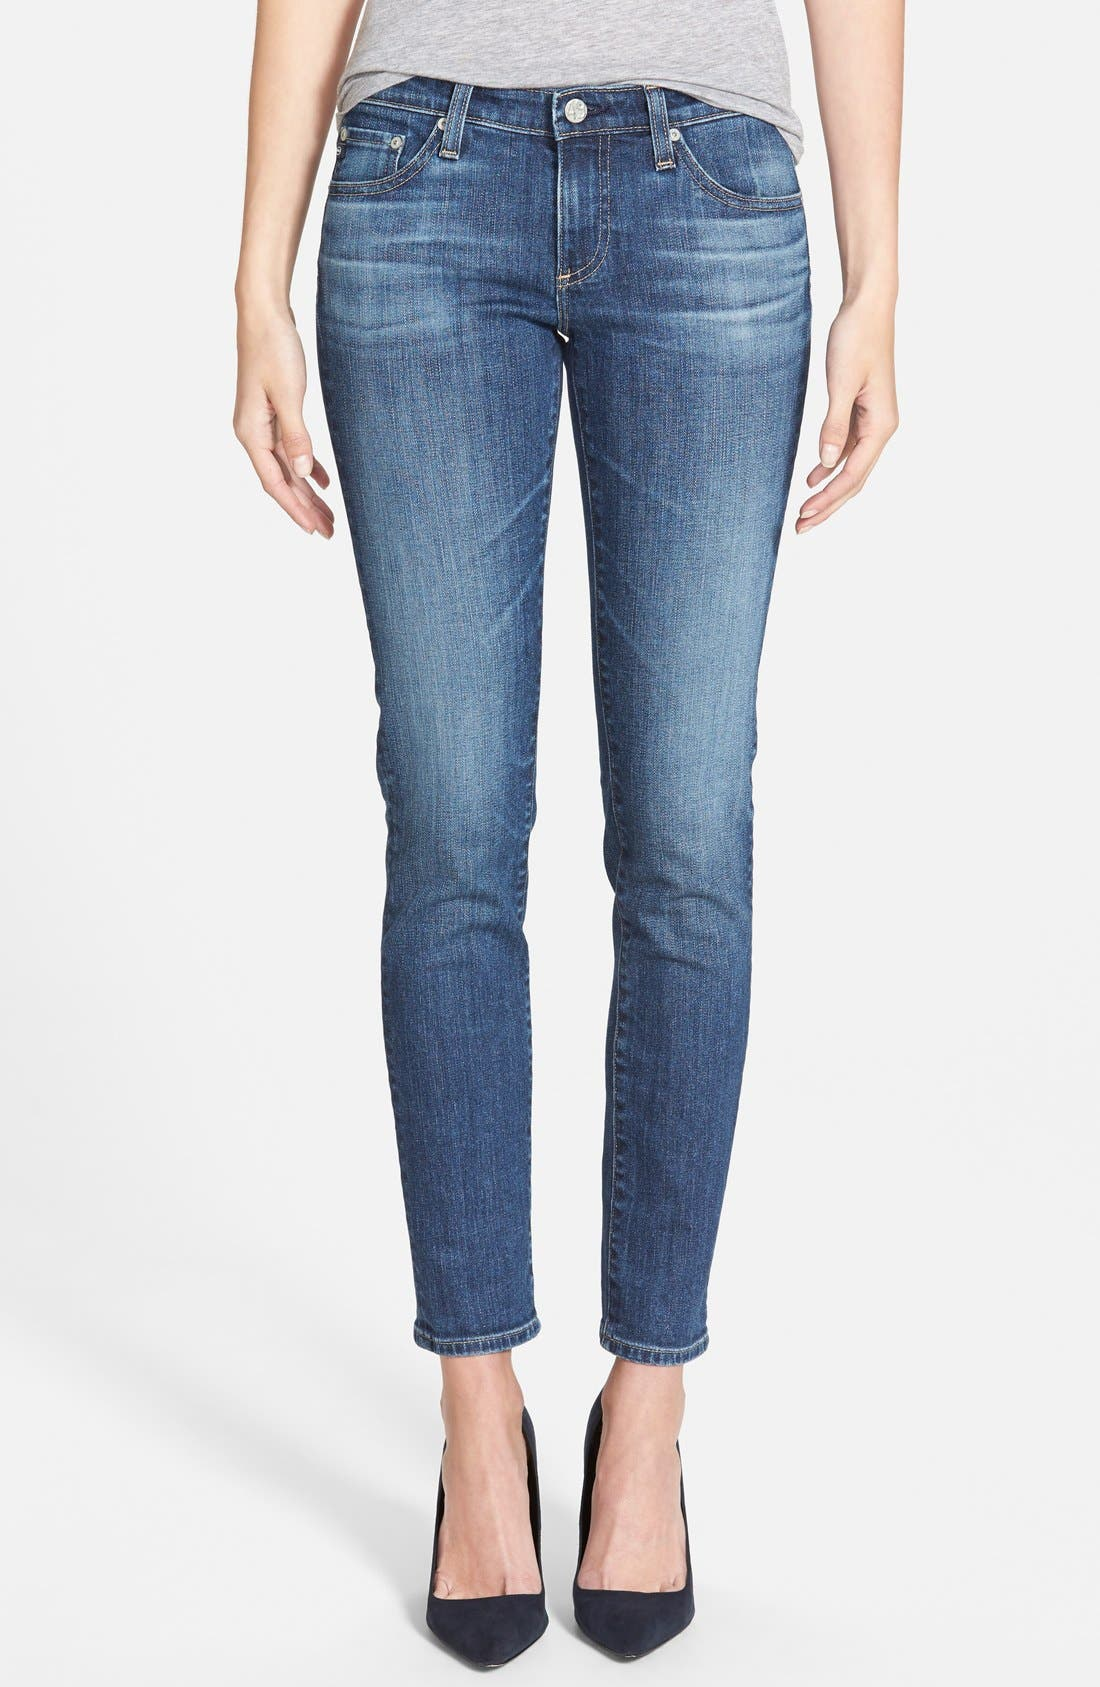 Main Image - AG 'The Stilt' Cigarette Leg Jeans (Four Year Dreamer) (Nordstrom Exclusive)